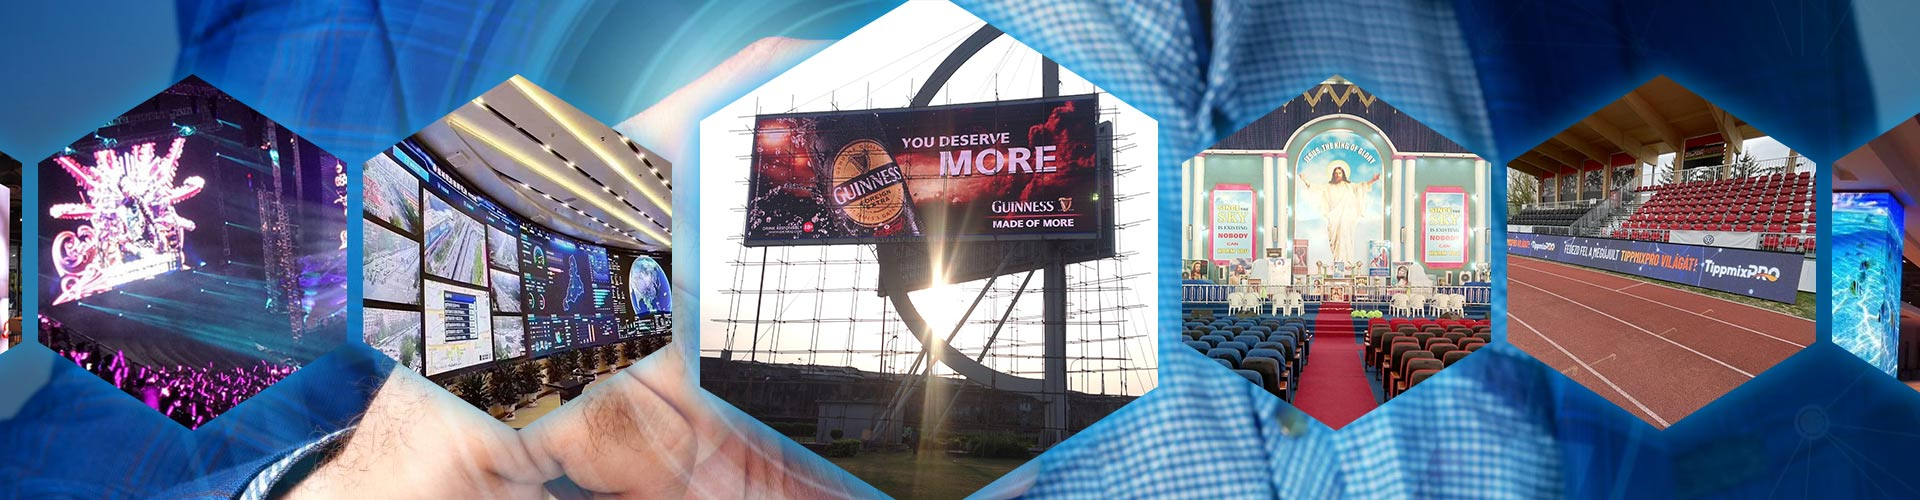 LED Screen Solution